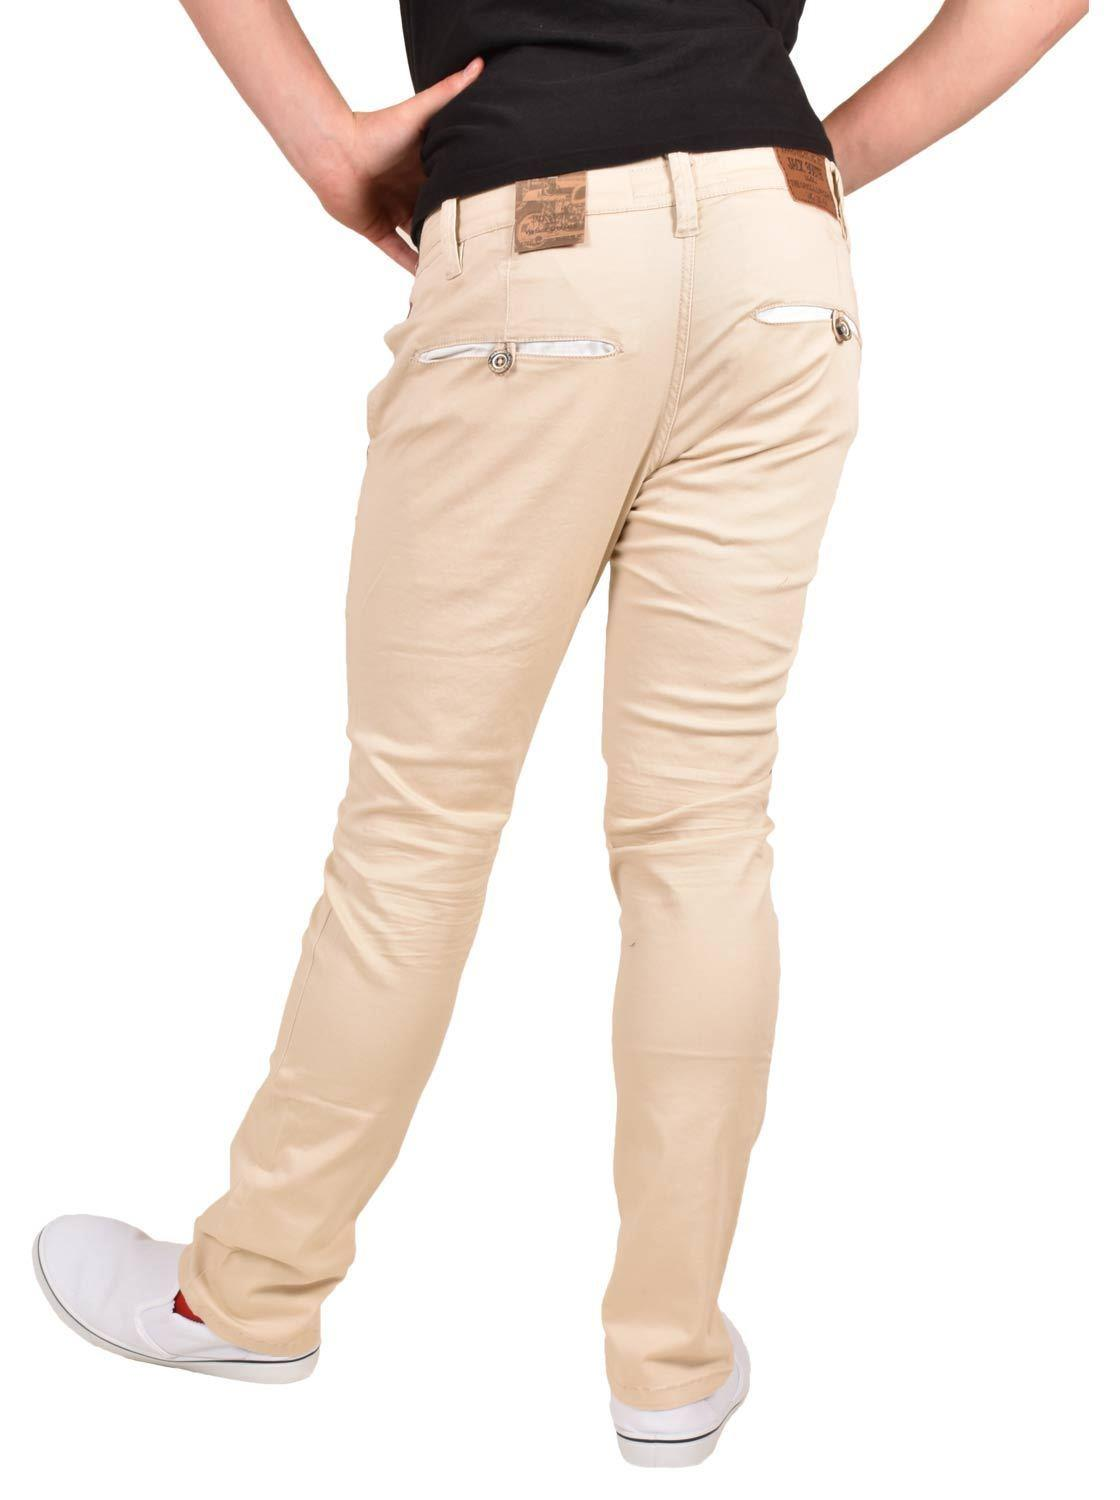 New-Mens-Designer-Jacksouth-Chino-Regular-Fit-Stretch-Cotton-Rich-Twill-Trousers thumbnail 33